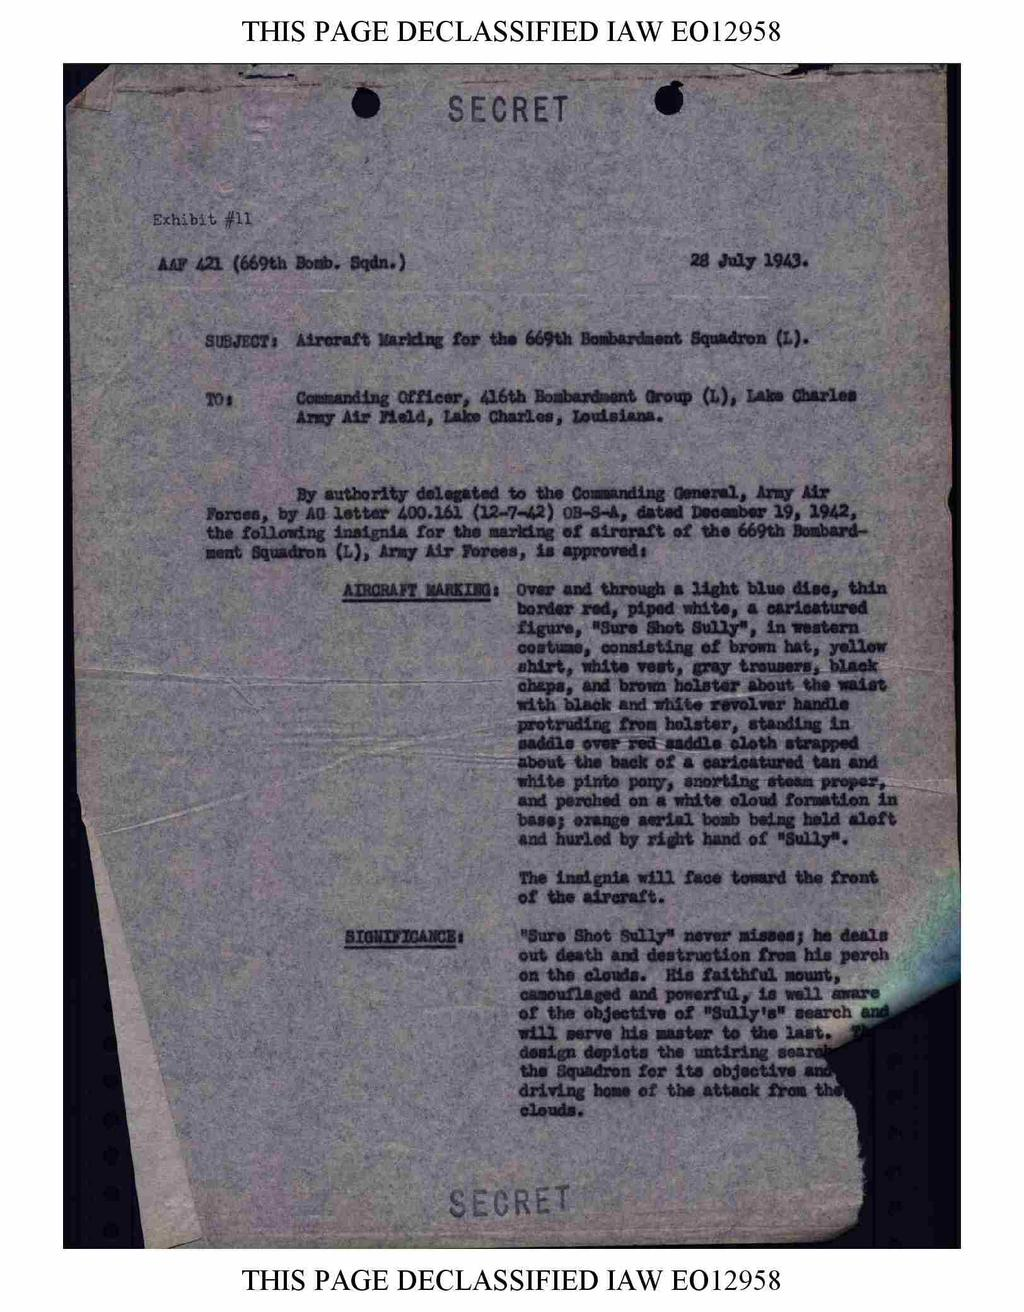 THIS PAGE DECLASSIFIED IAW EO 2958 Y =